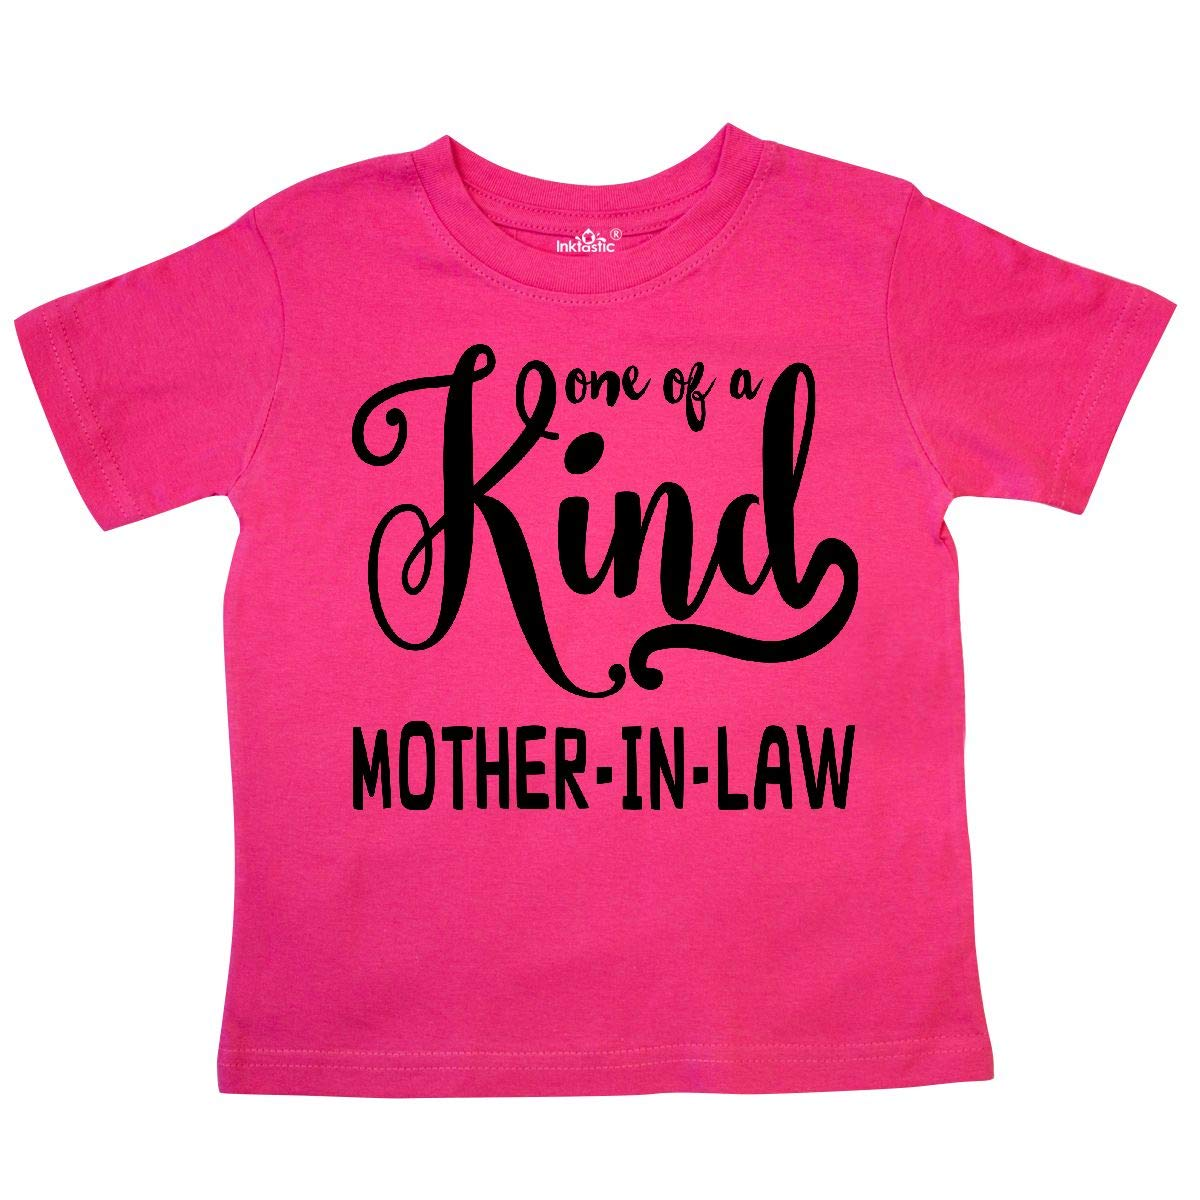 inktastic Gift for Mother-in-Laws 1 of a Kind Mother-in-Law Toddler T-Shirt